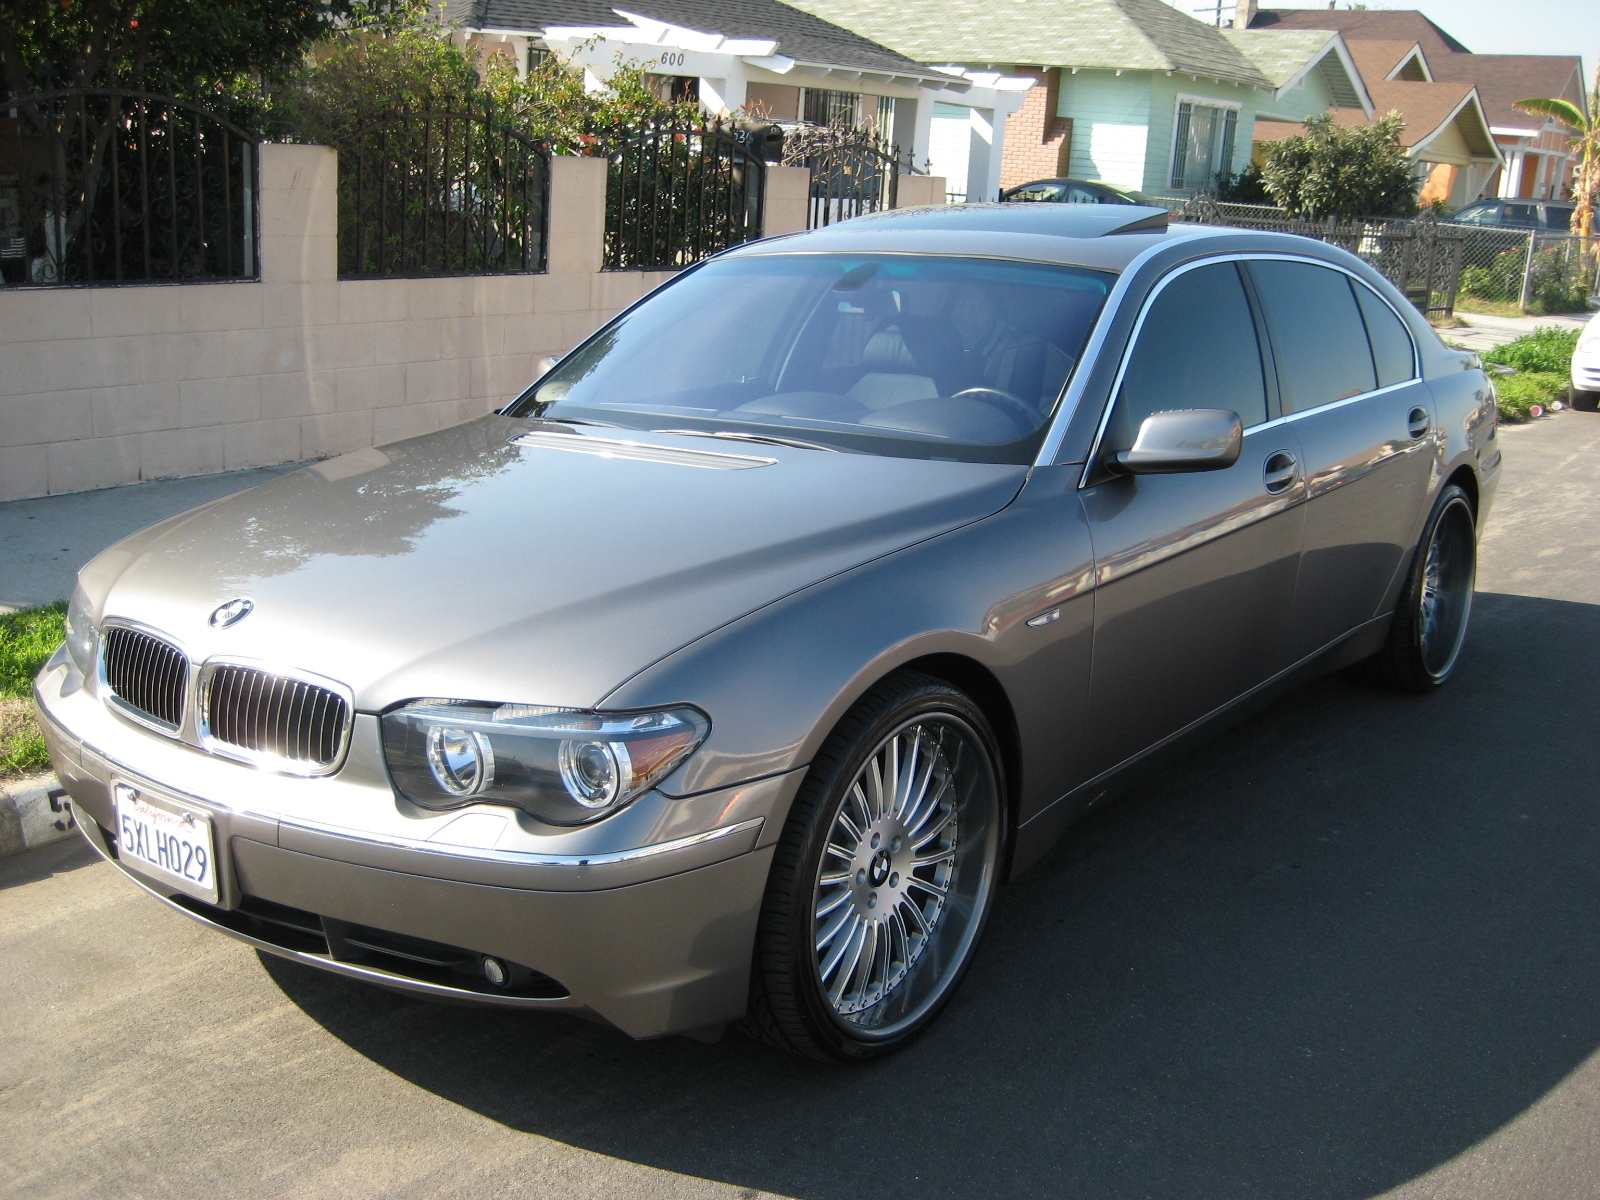 beemac 2002 BMW 7 Series 13114380